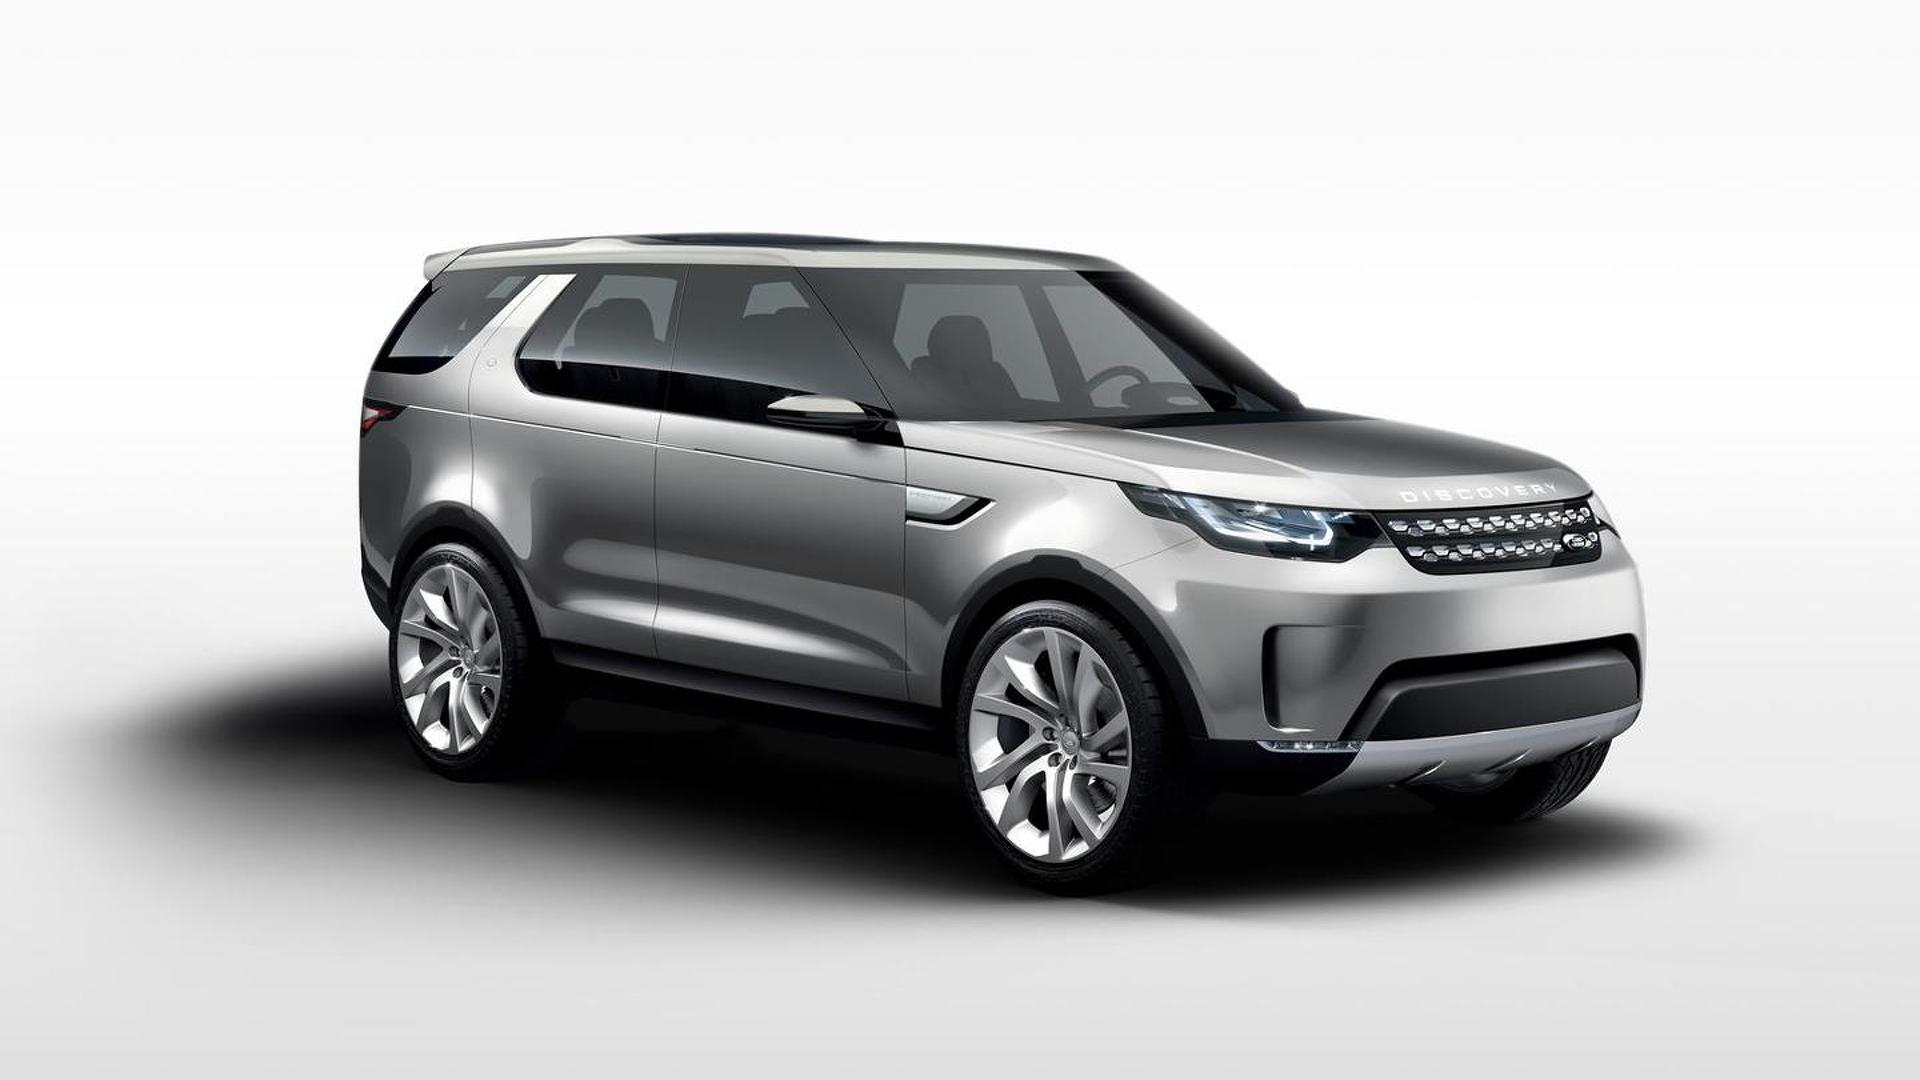 Land Rover Discovery Vision Concept goes official ahead of New York debut [video]